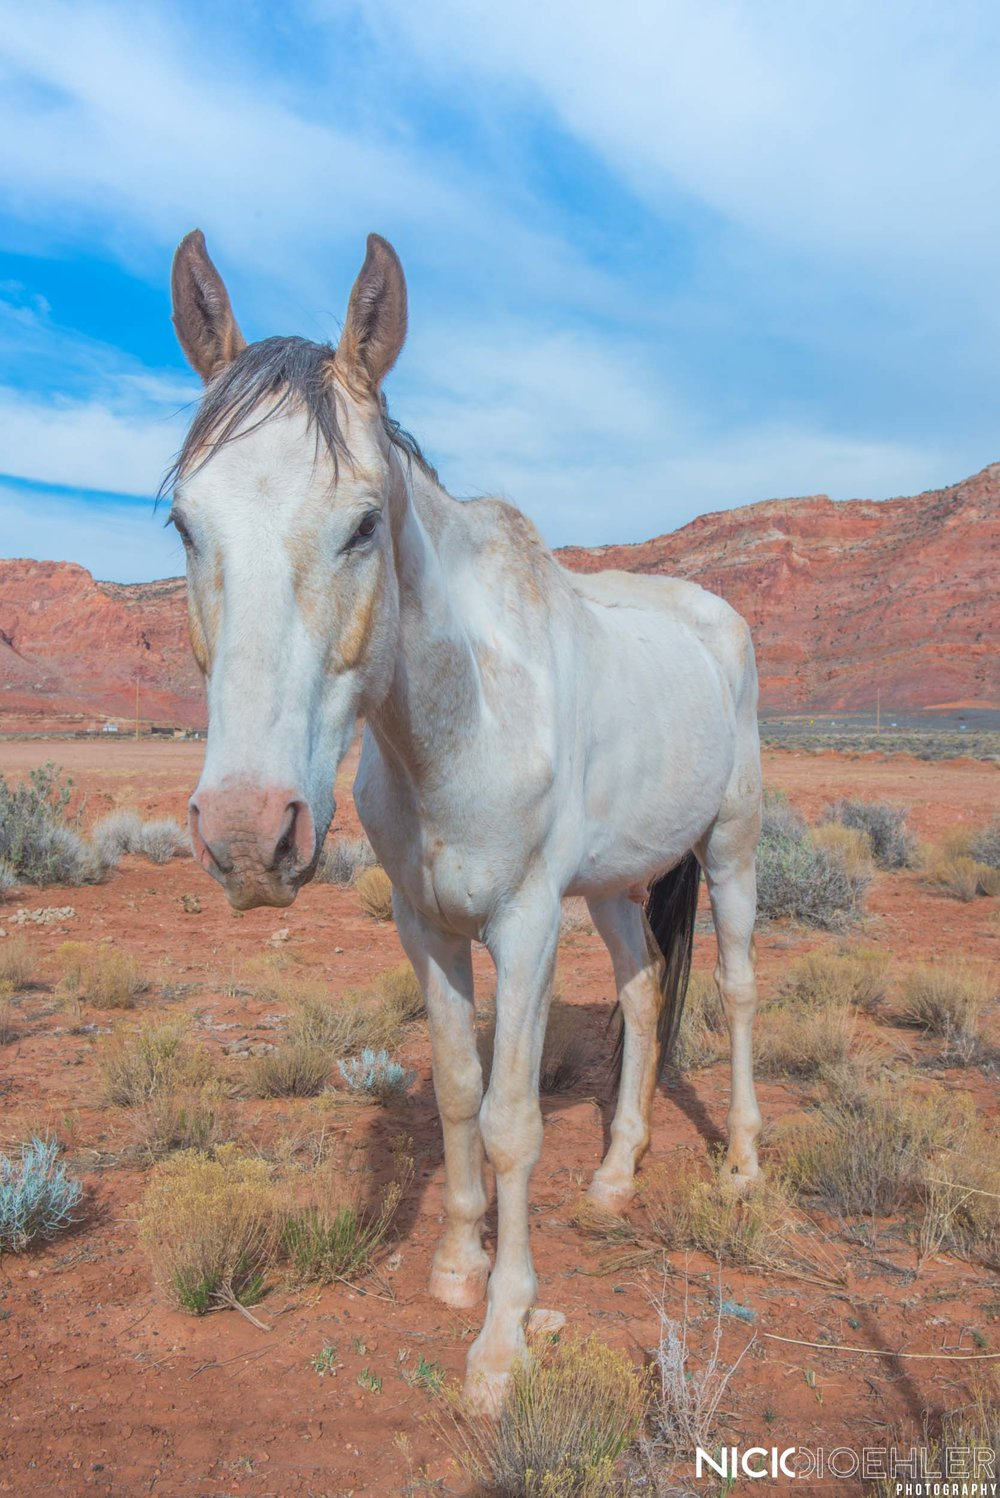 Arizona, USA: A random horse along the side of the road wanted to say hello.